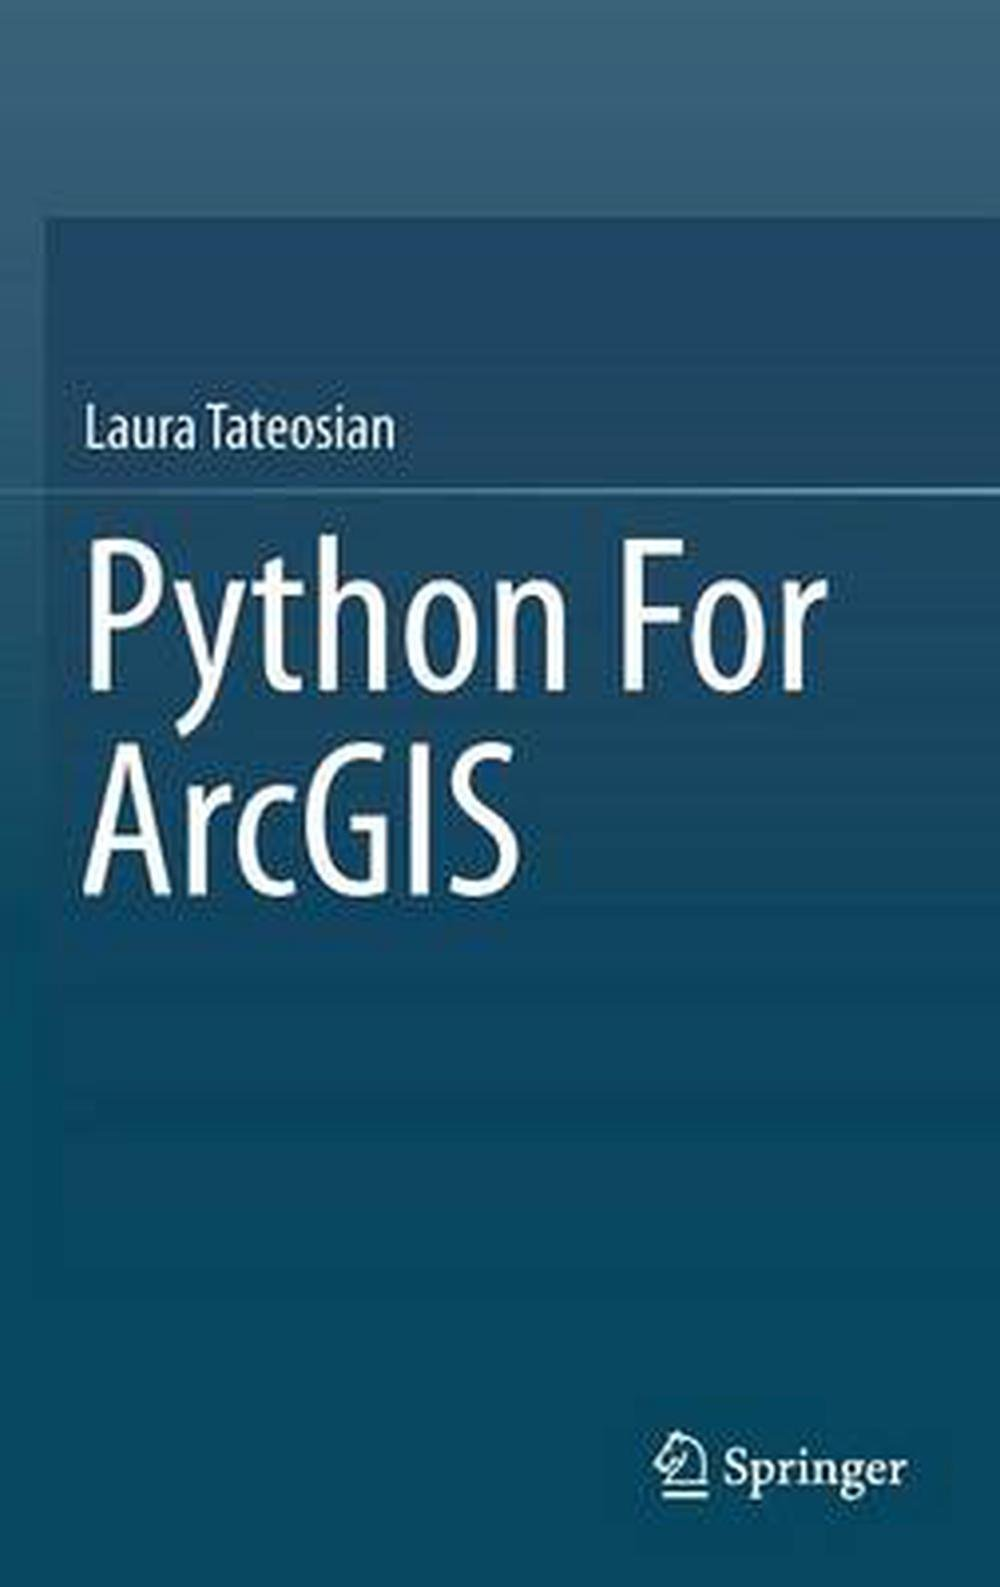 Python for Arcgis